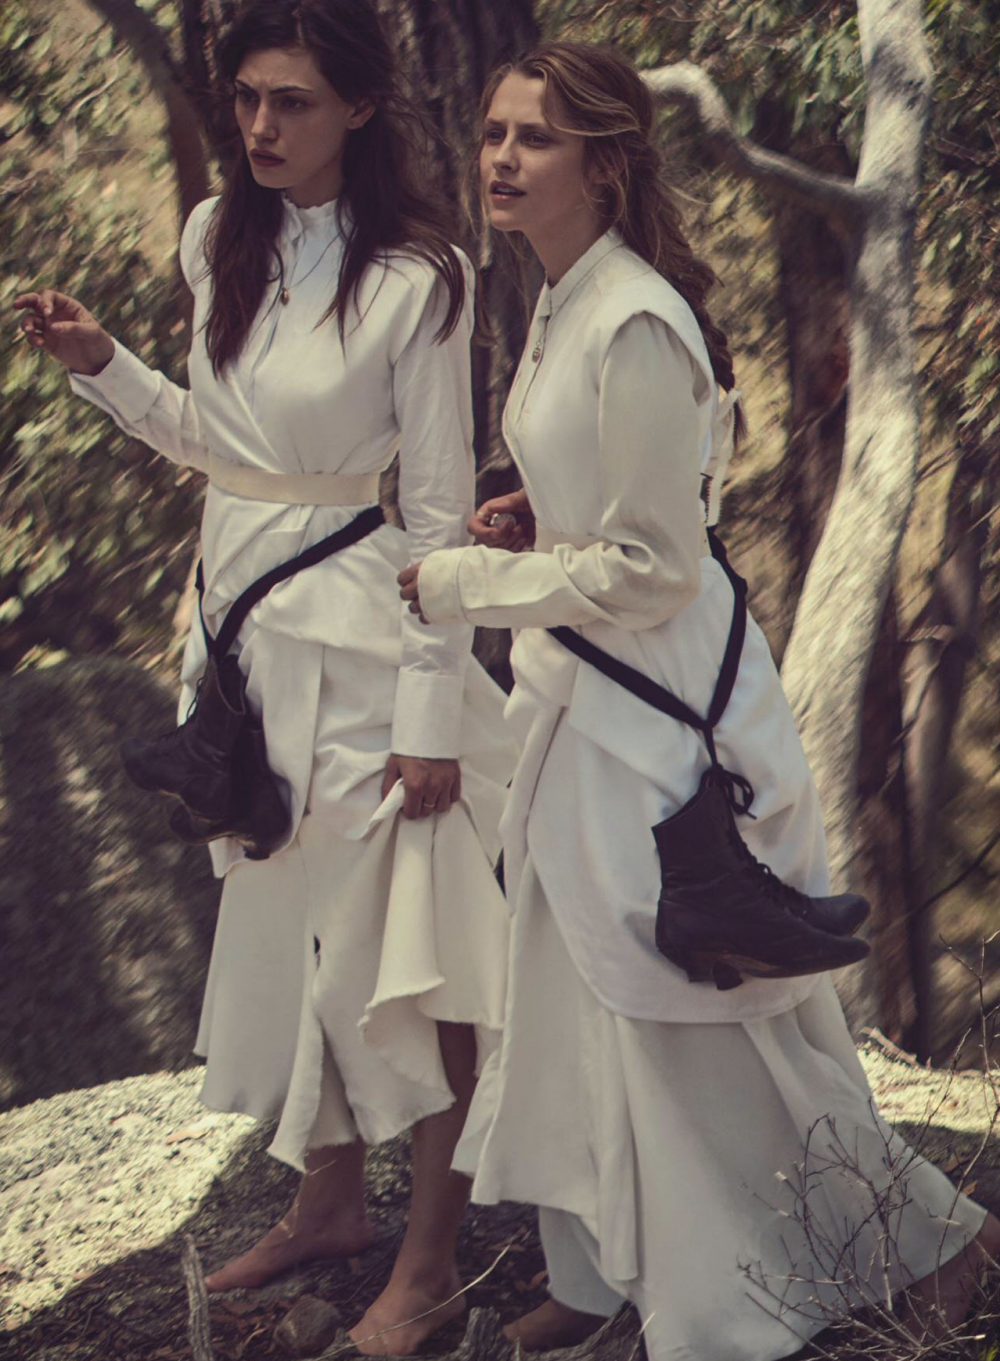 93d0e-teresa-palmer-phoebe-tonkin-by-will-davidson-for-vogue-australia-march-2015-4.png